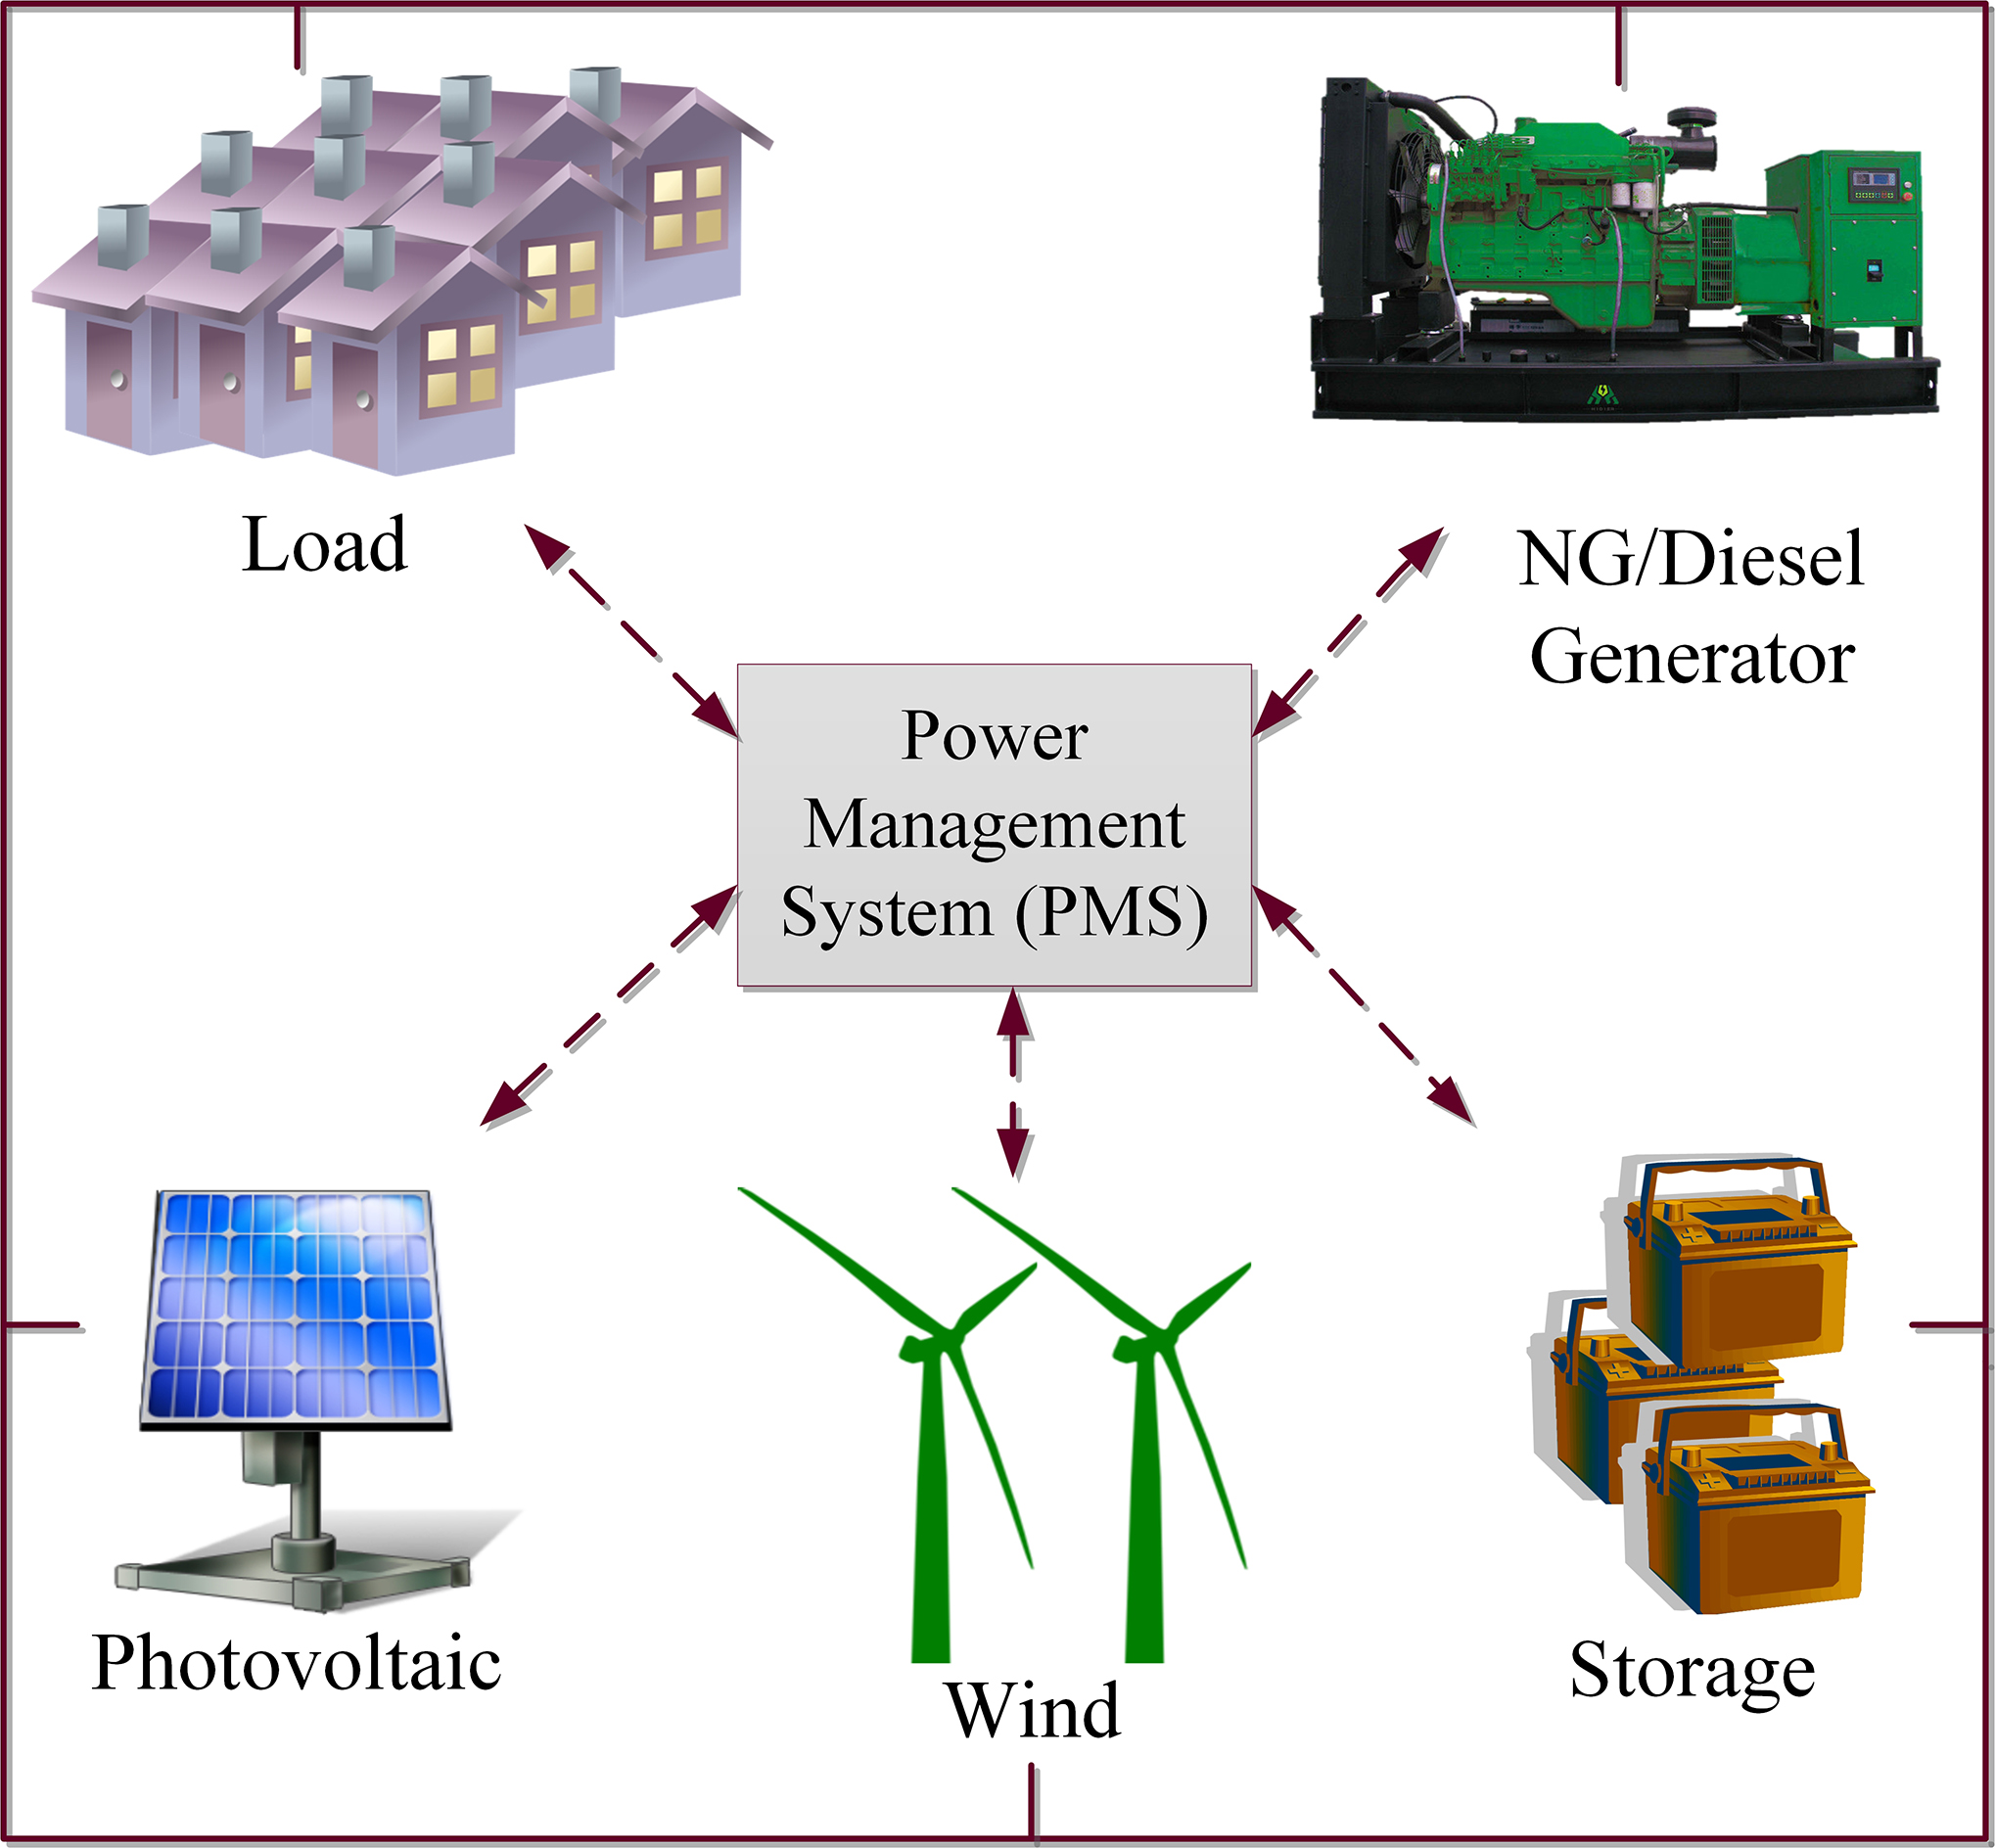 Smart Microgrids To Help Data Centers Farm Communities Use Locally Diagram Also Wind Power Generator Diagrams On Turbine A Microgrid Management System Can Integrate Solar And Generators Battery Storage Provide Consistent Reliable Consumers In